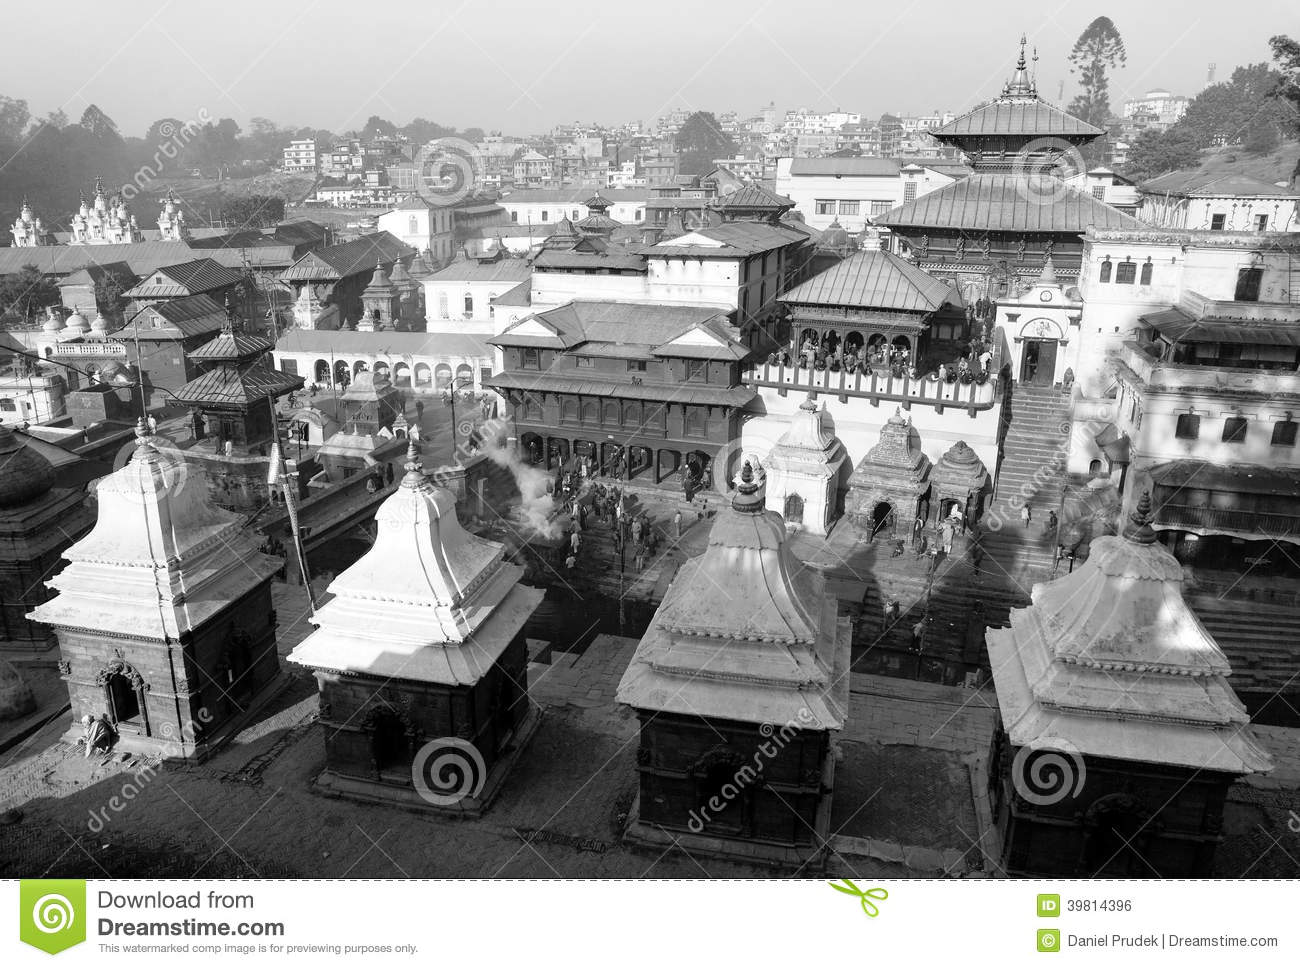 Black and white view of Pashupatinath